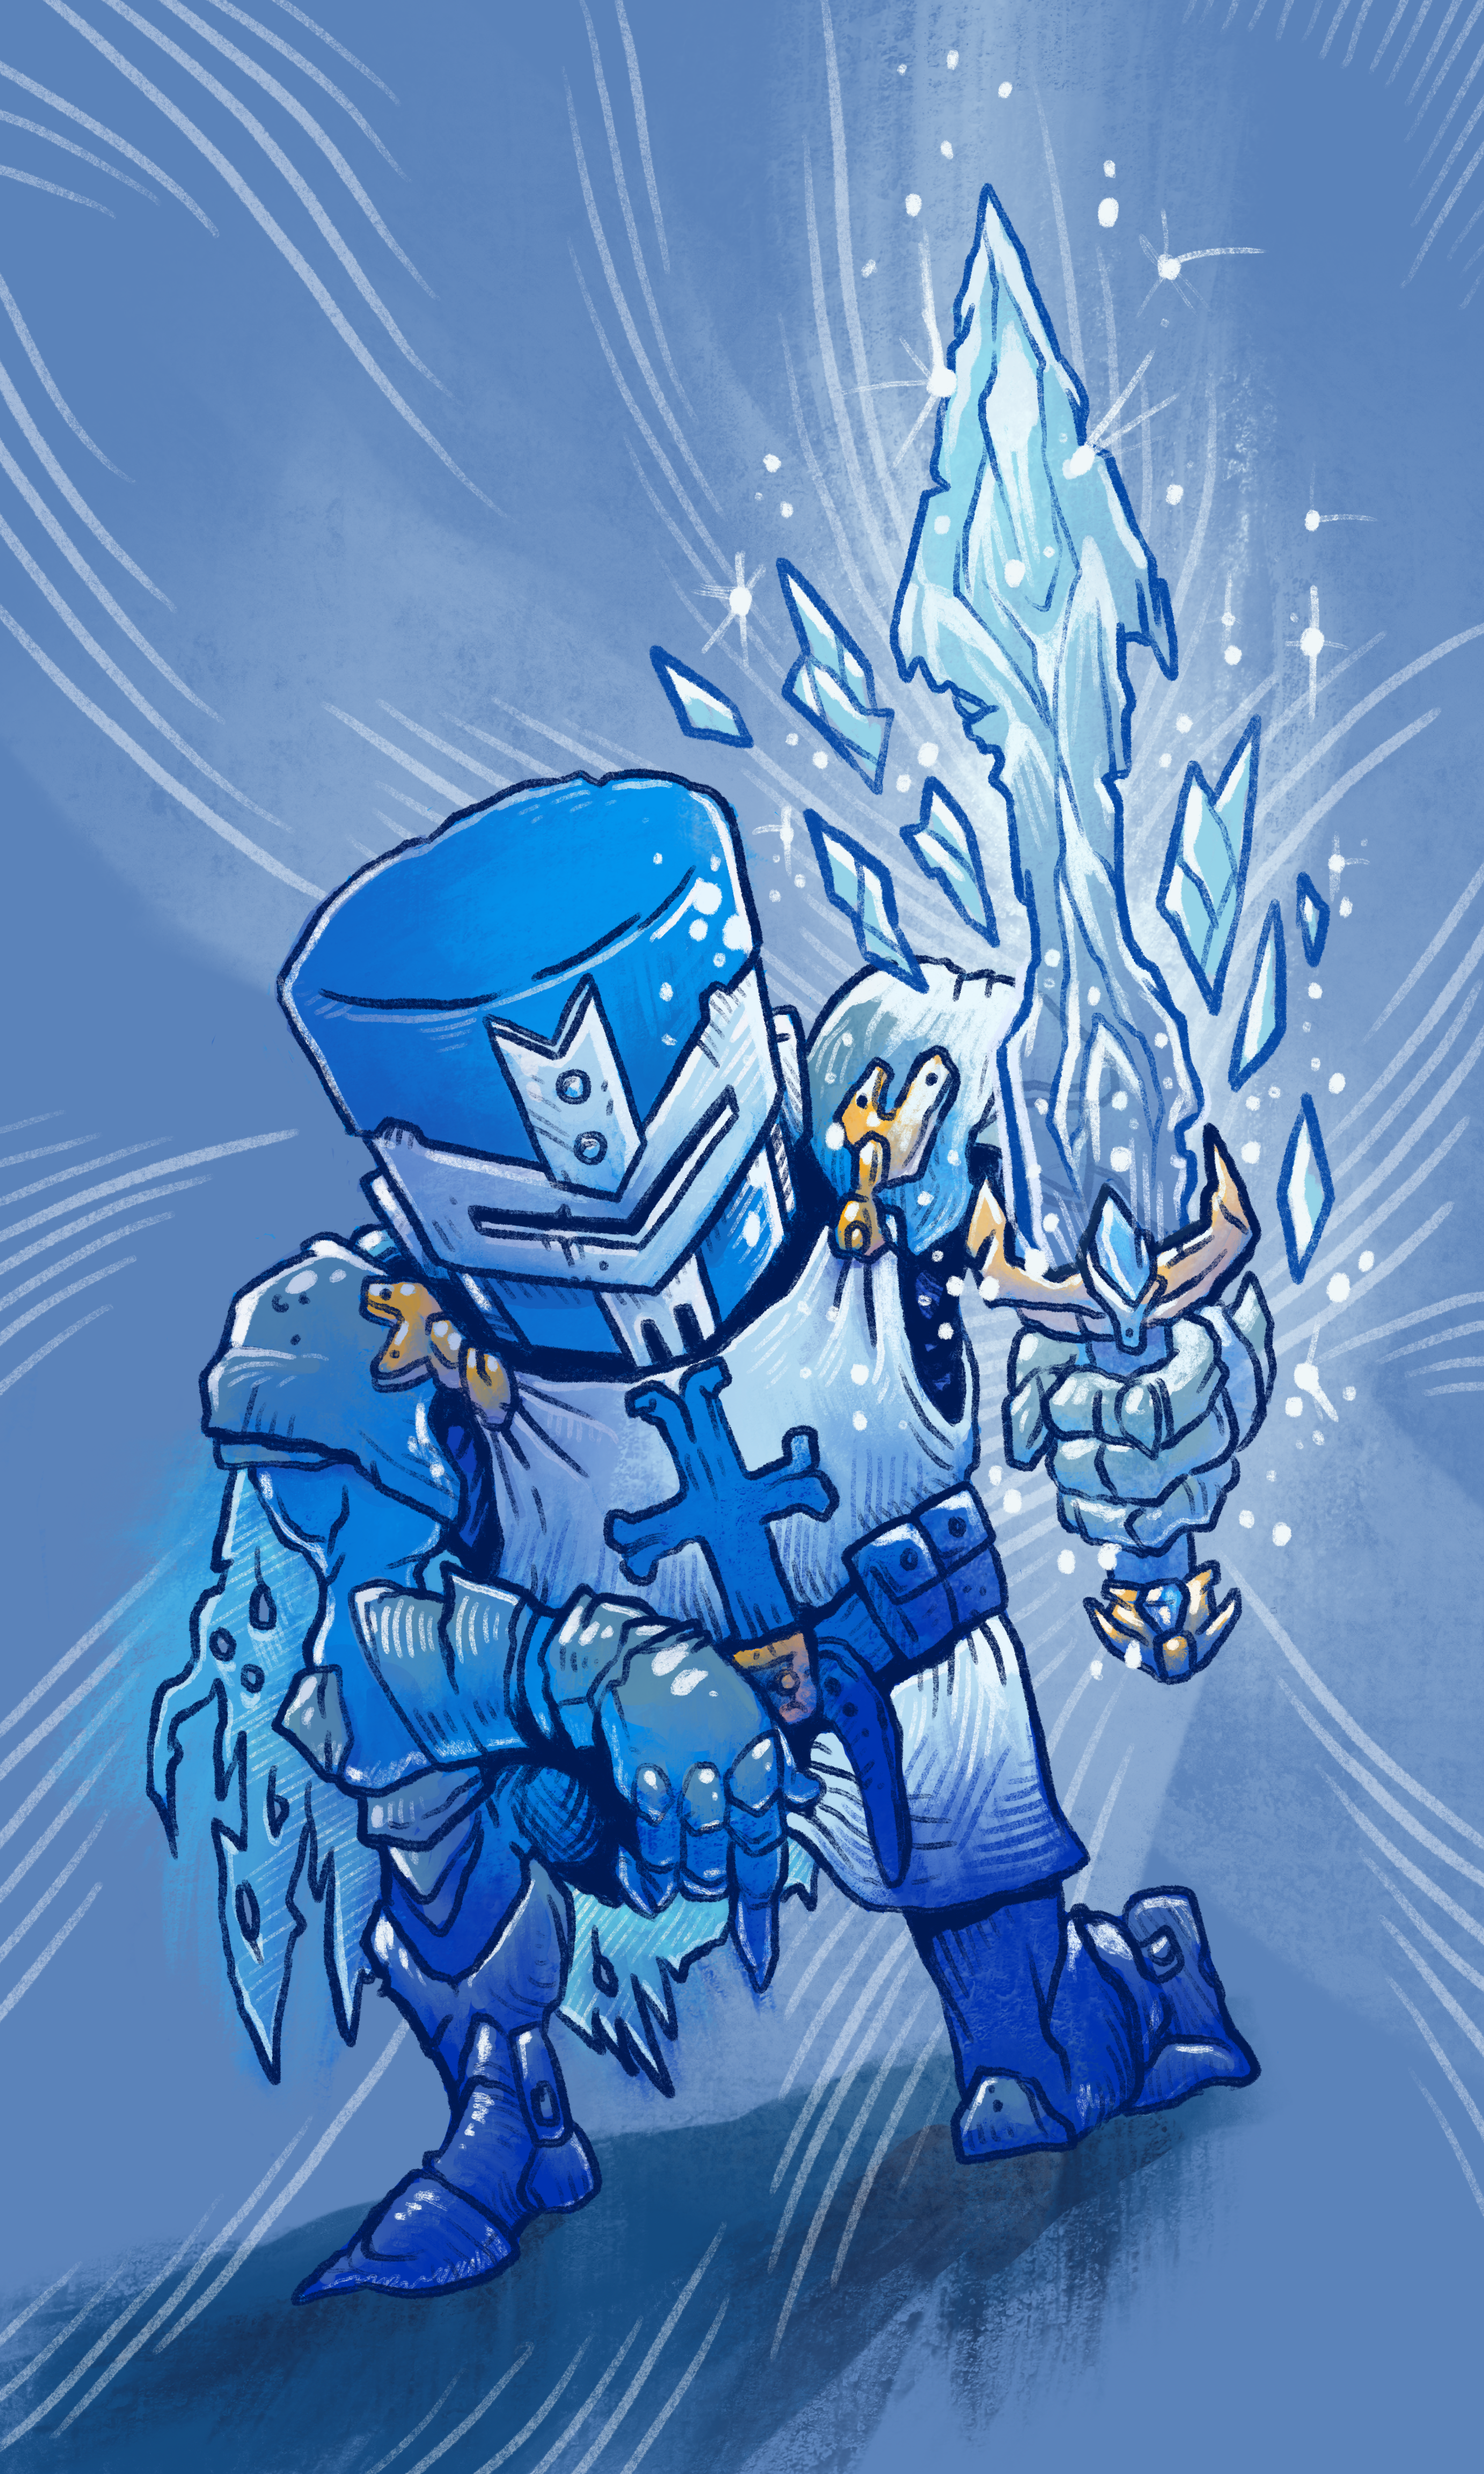 Forged in Ice: Blue Castle Crasher